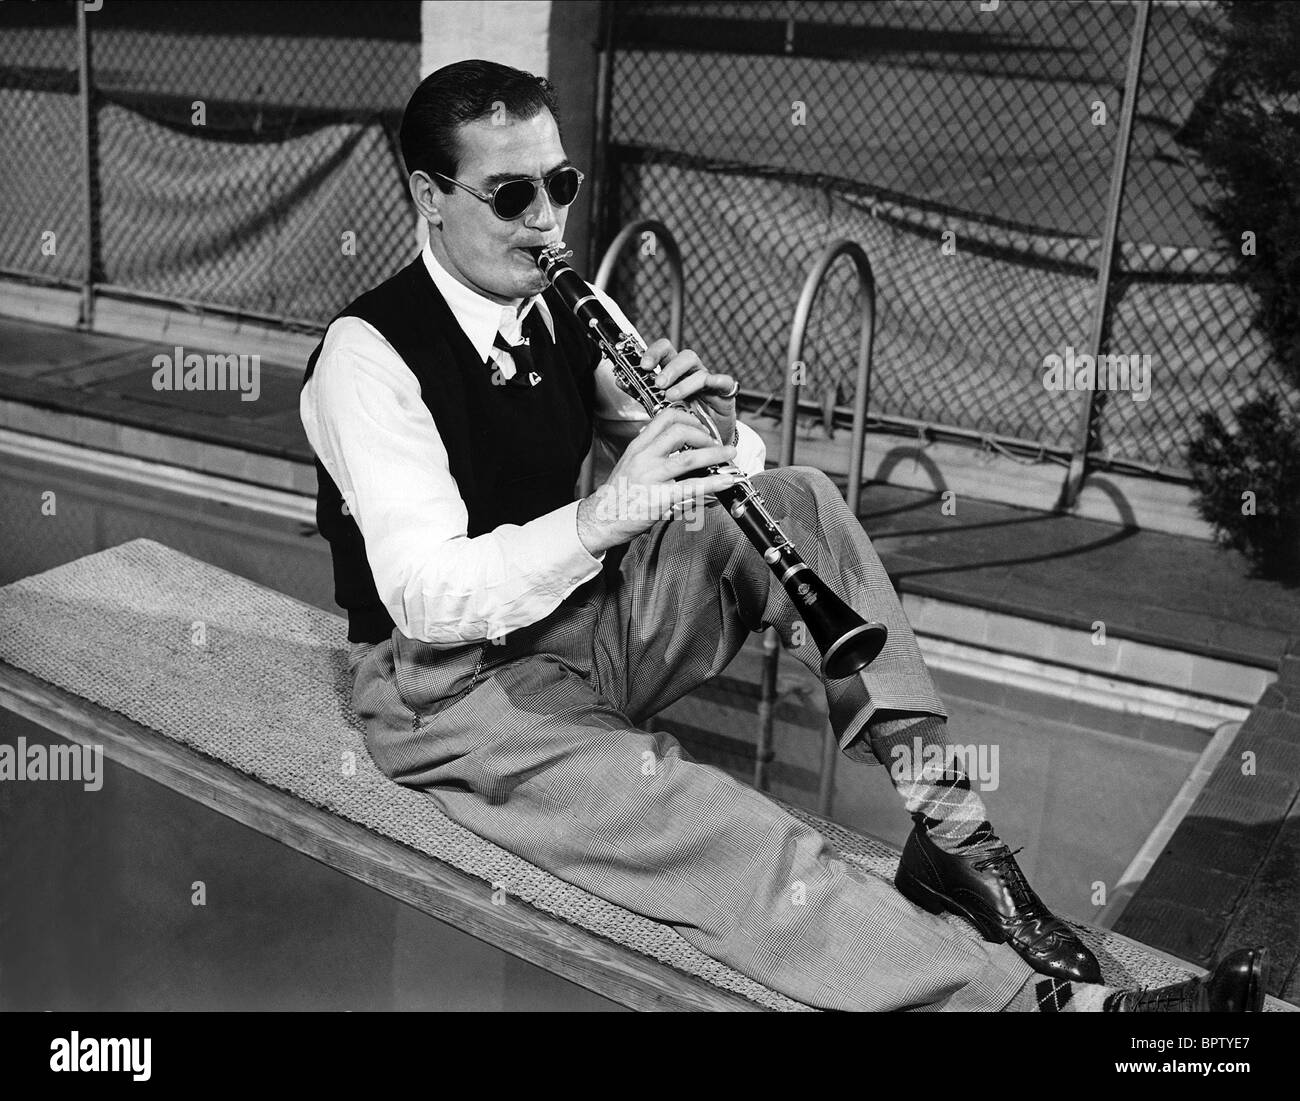 Artie Shaw Marriages Artie Shaw Stock Photos Artie Shaw Stock Images Alamy